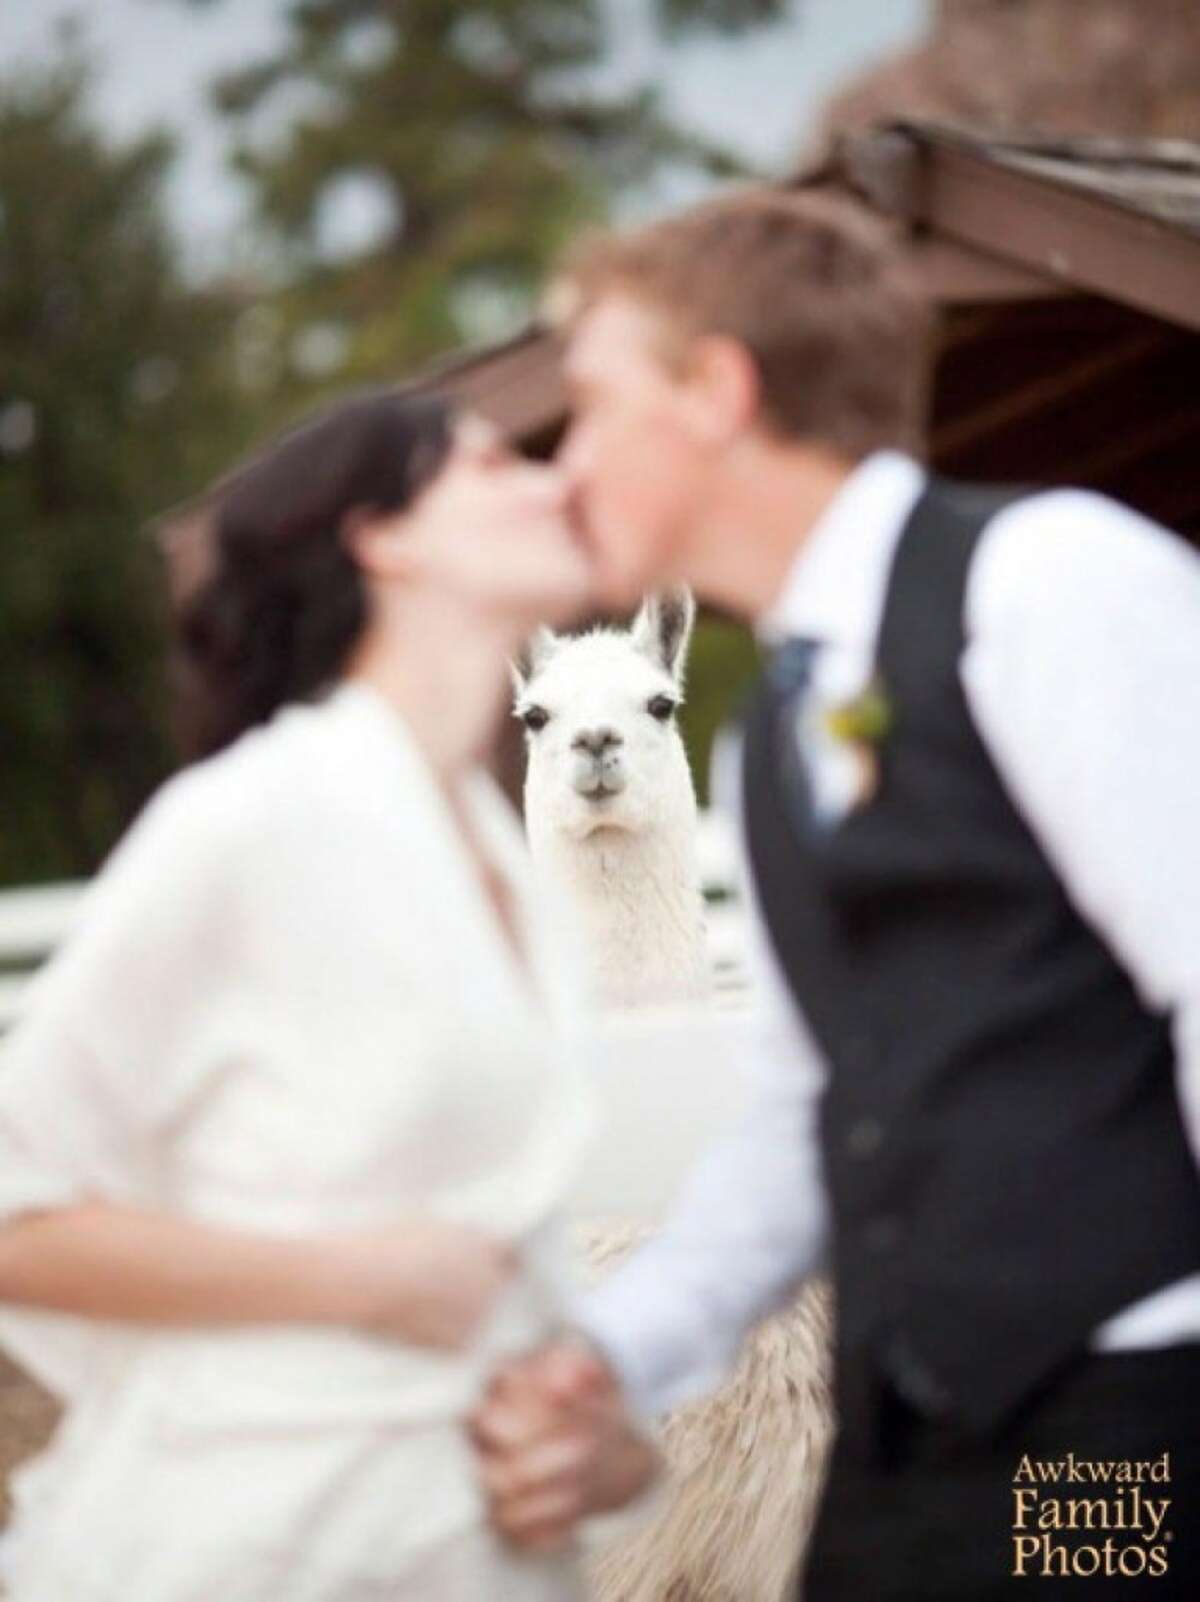 Nothing was going to break the bond between them - even the jealous llama.